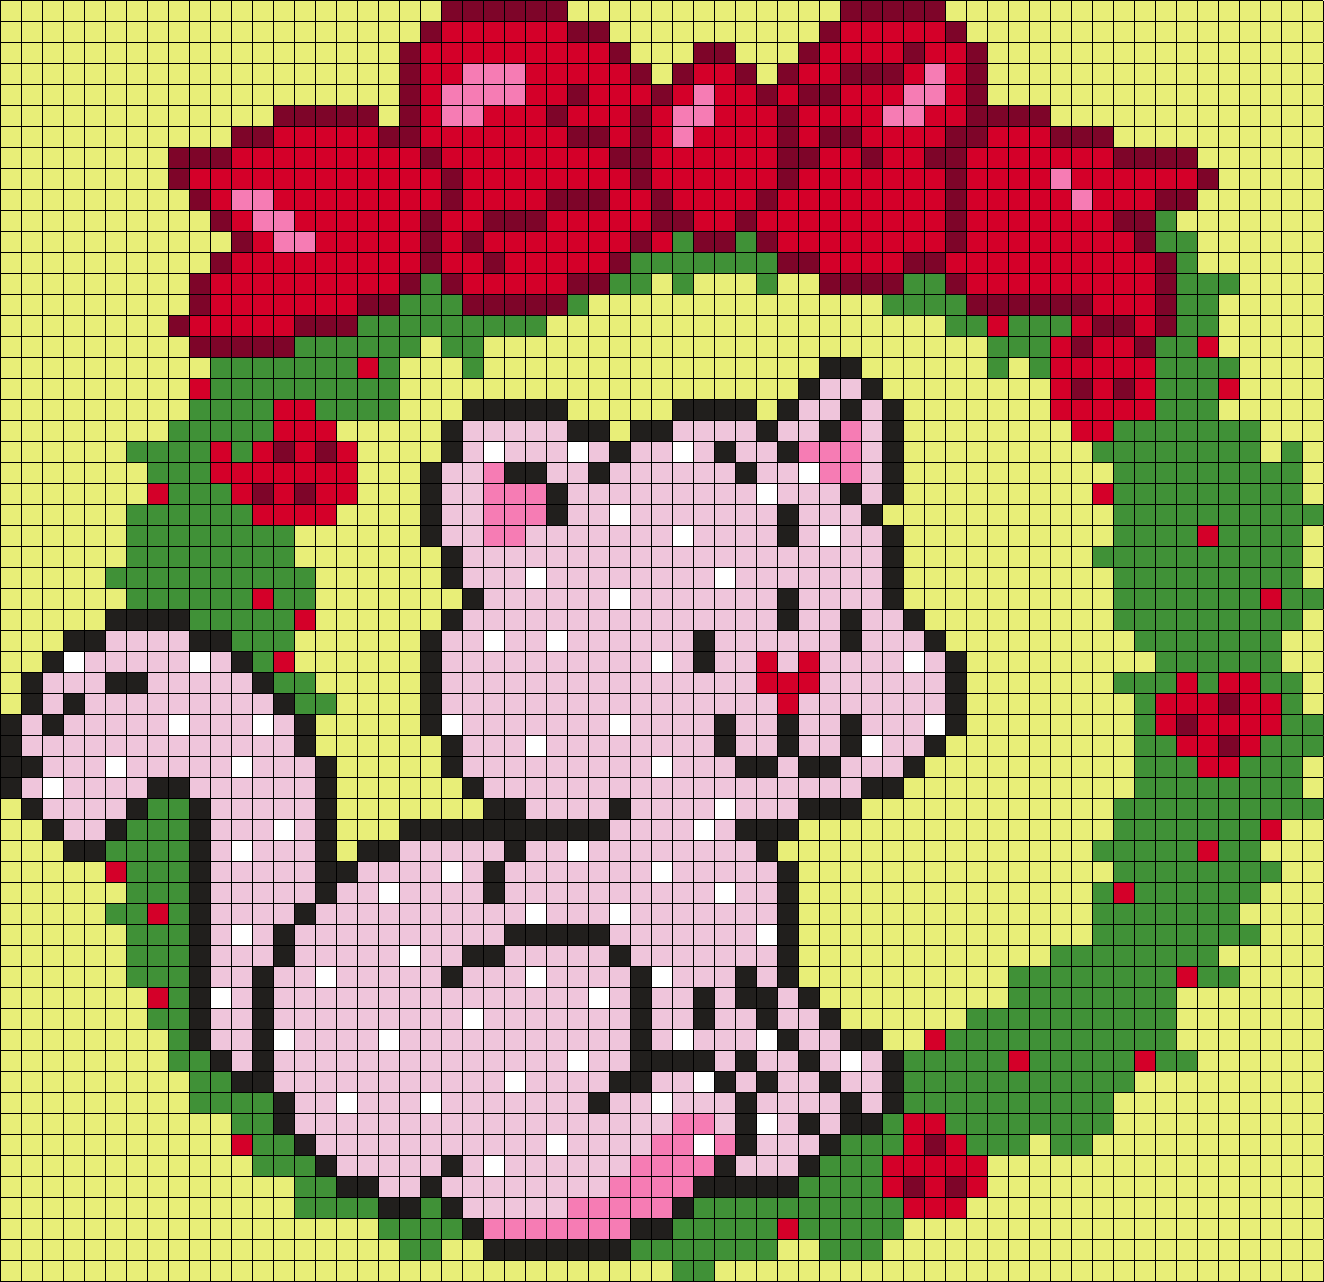 Custard In A Strawberry Wreath From Strawberry Shortcake Perler Bead Pattern / Bead Sprite